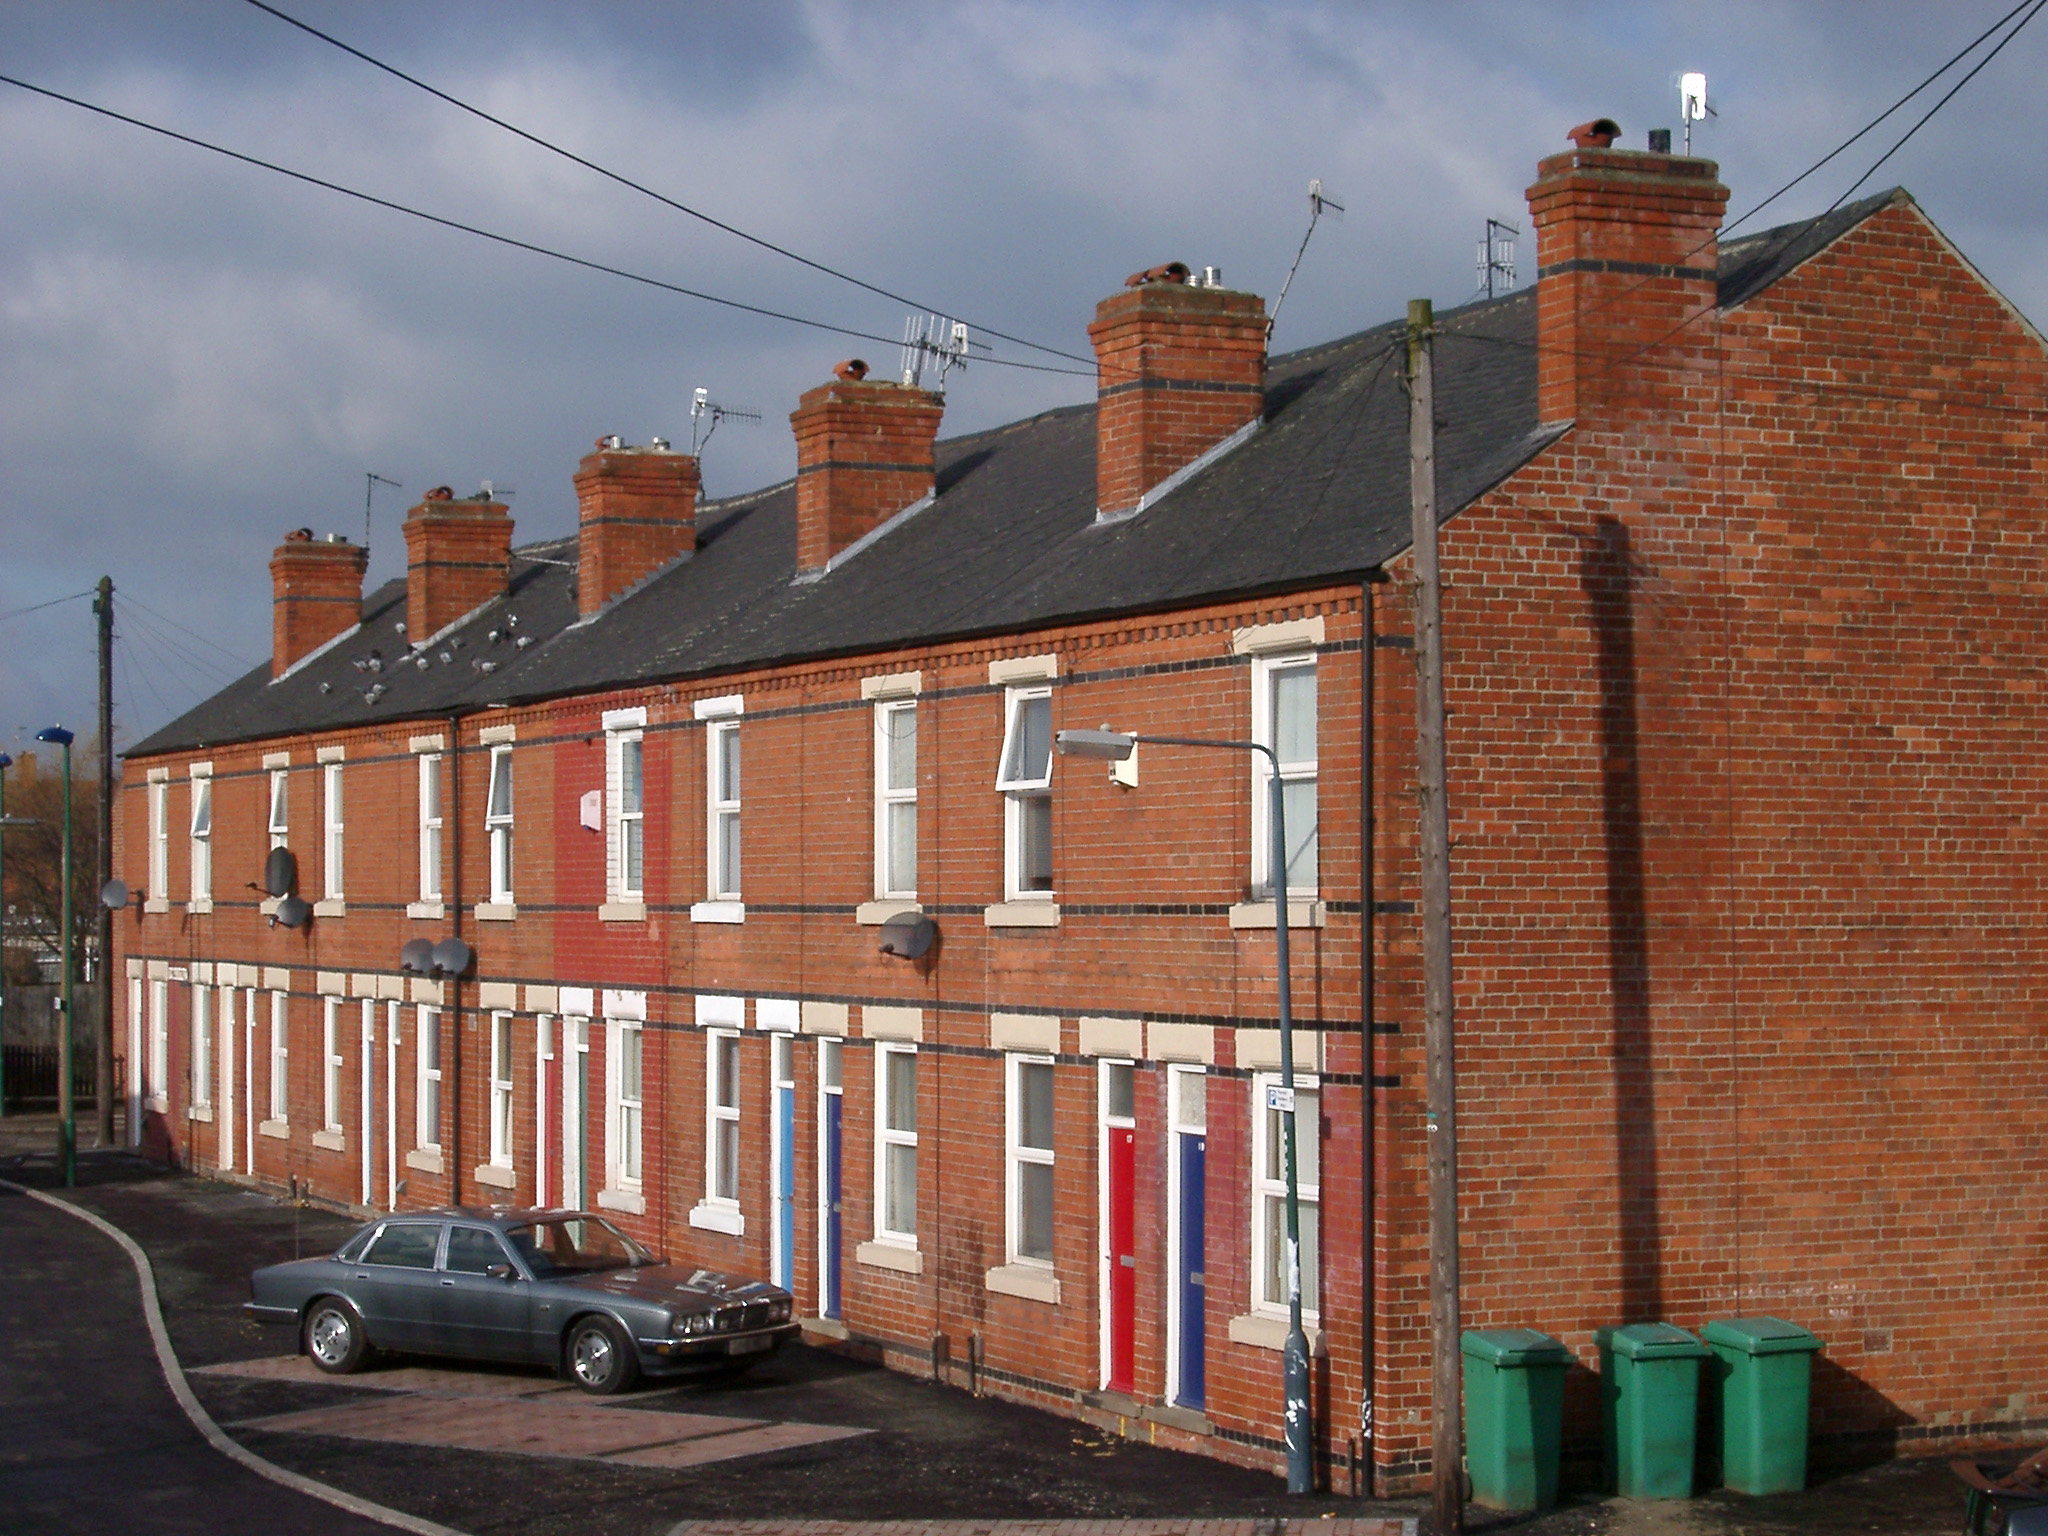 Free stock photo of red brick terraced houses for What is terrace house